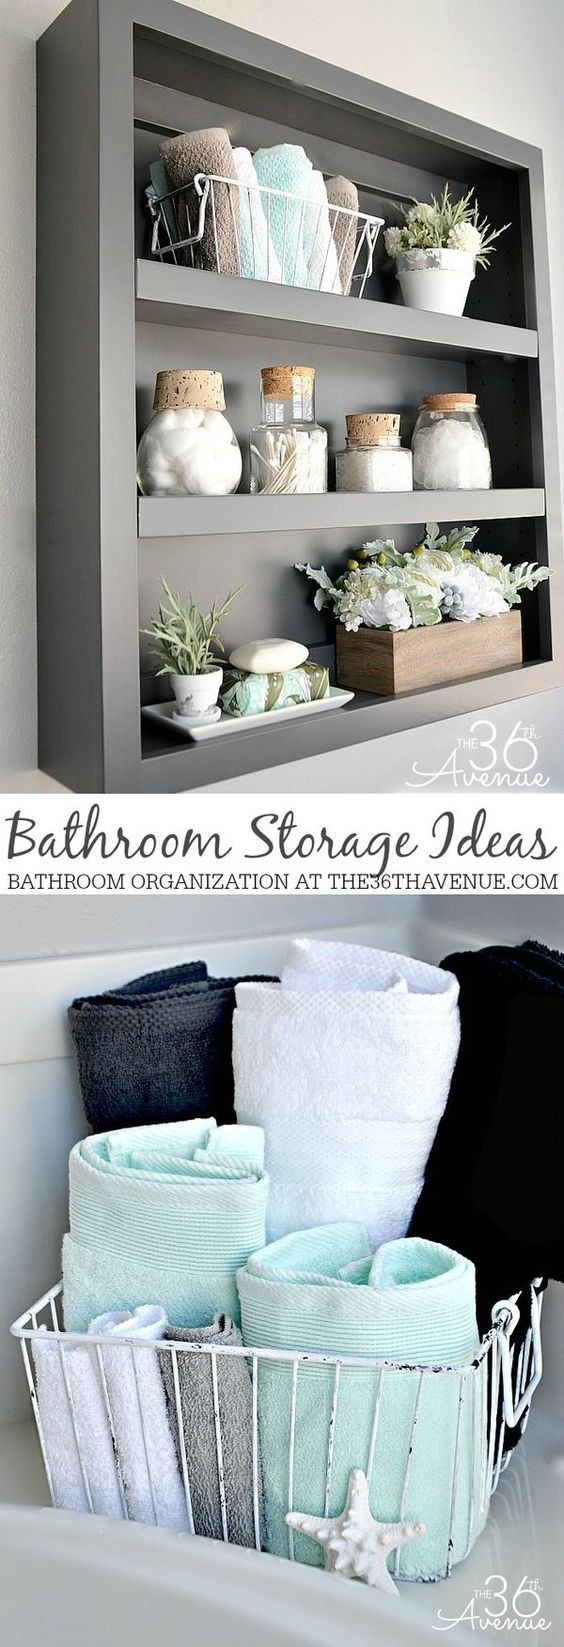 Bathroom Storage and Organization Ideas at the36thavenue.com  #cleaning #bathroom